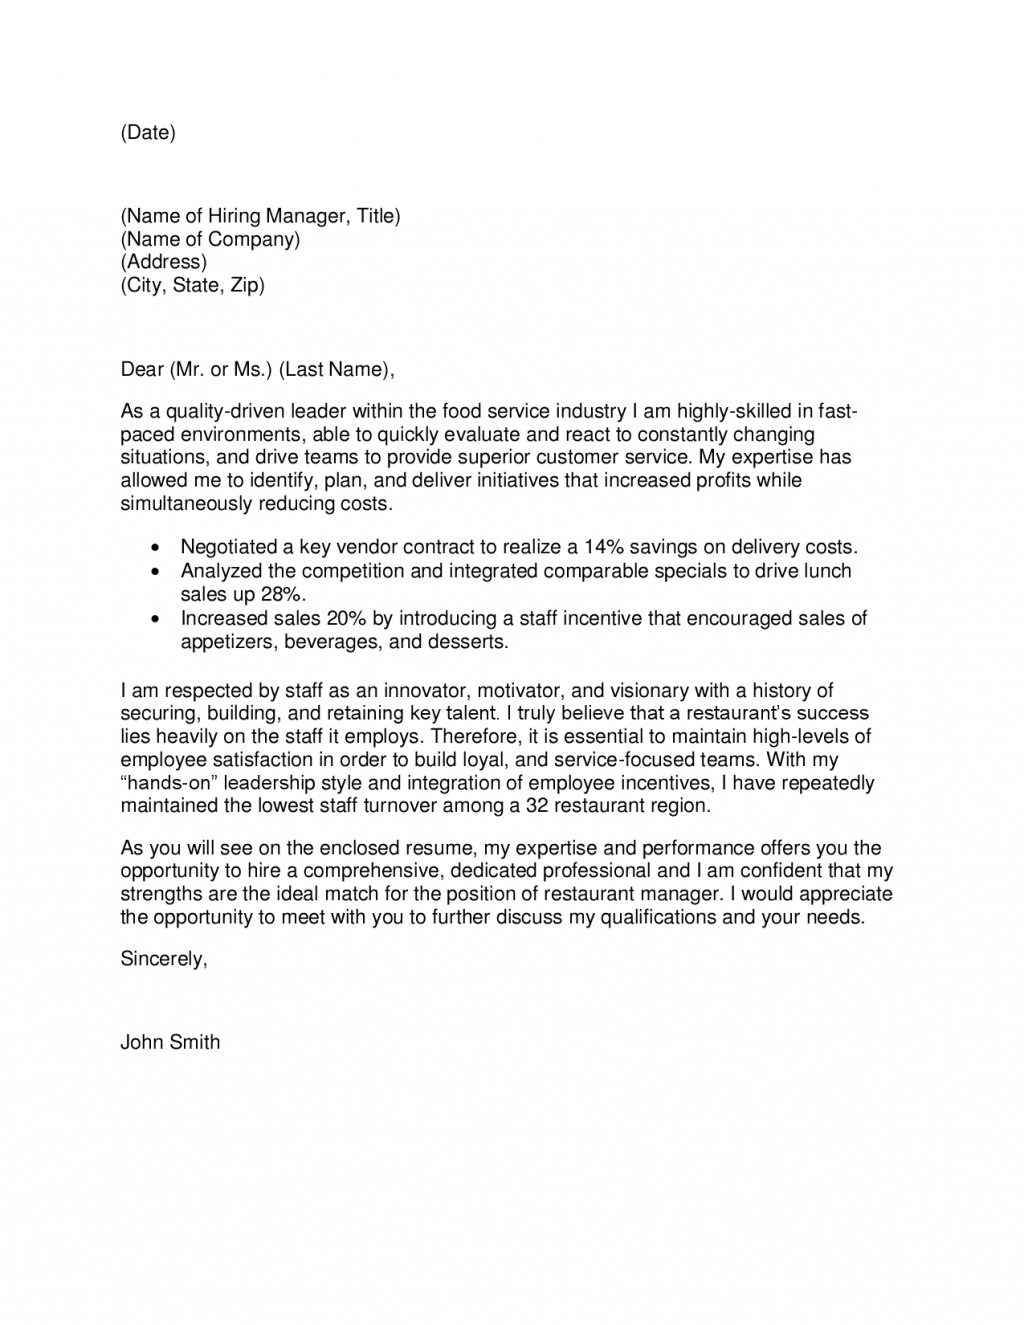 013 Restaurant Manager Cover Letter Essay About Favorite Beautiful Your Write An Large